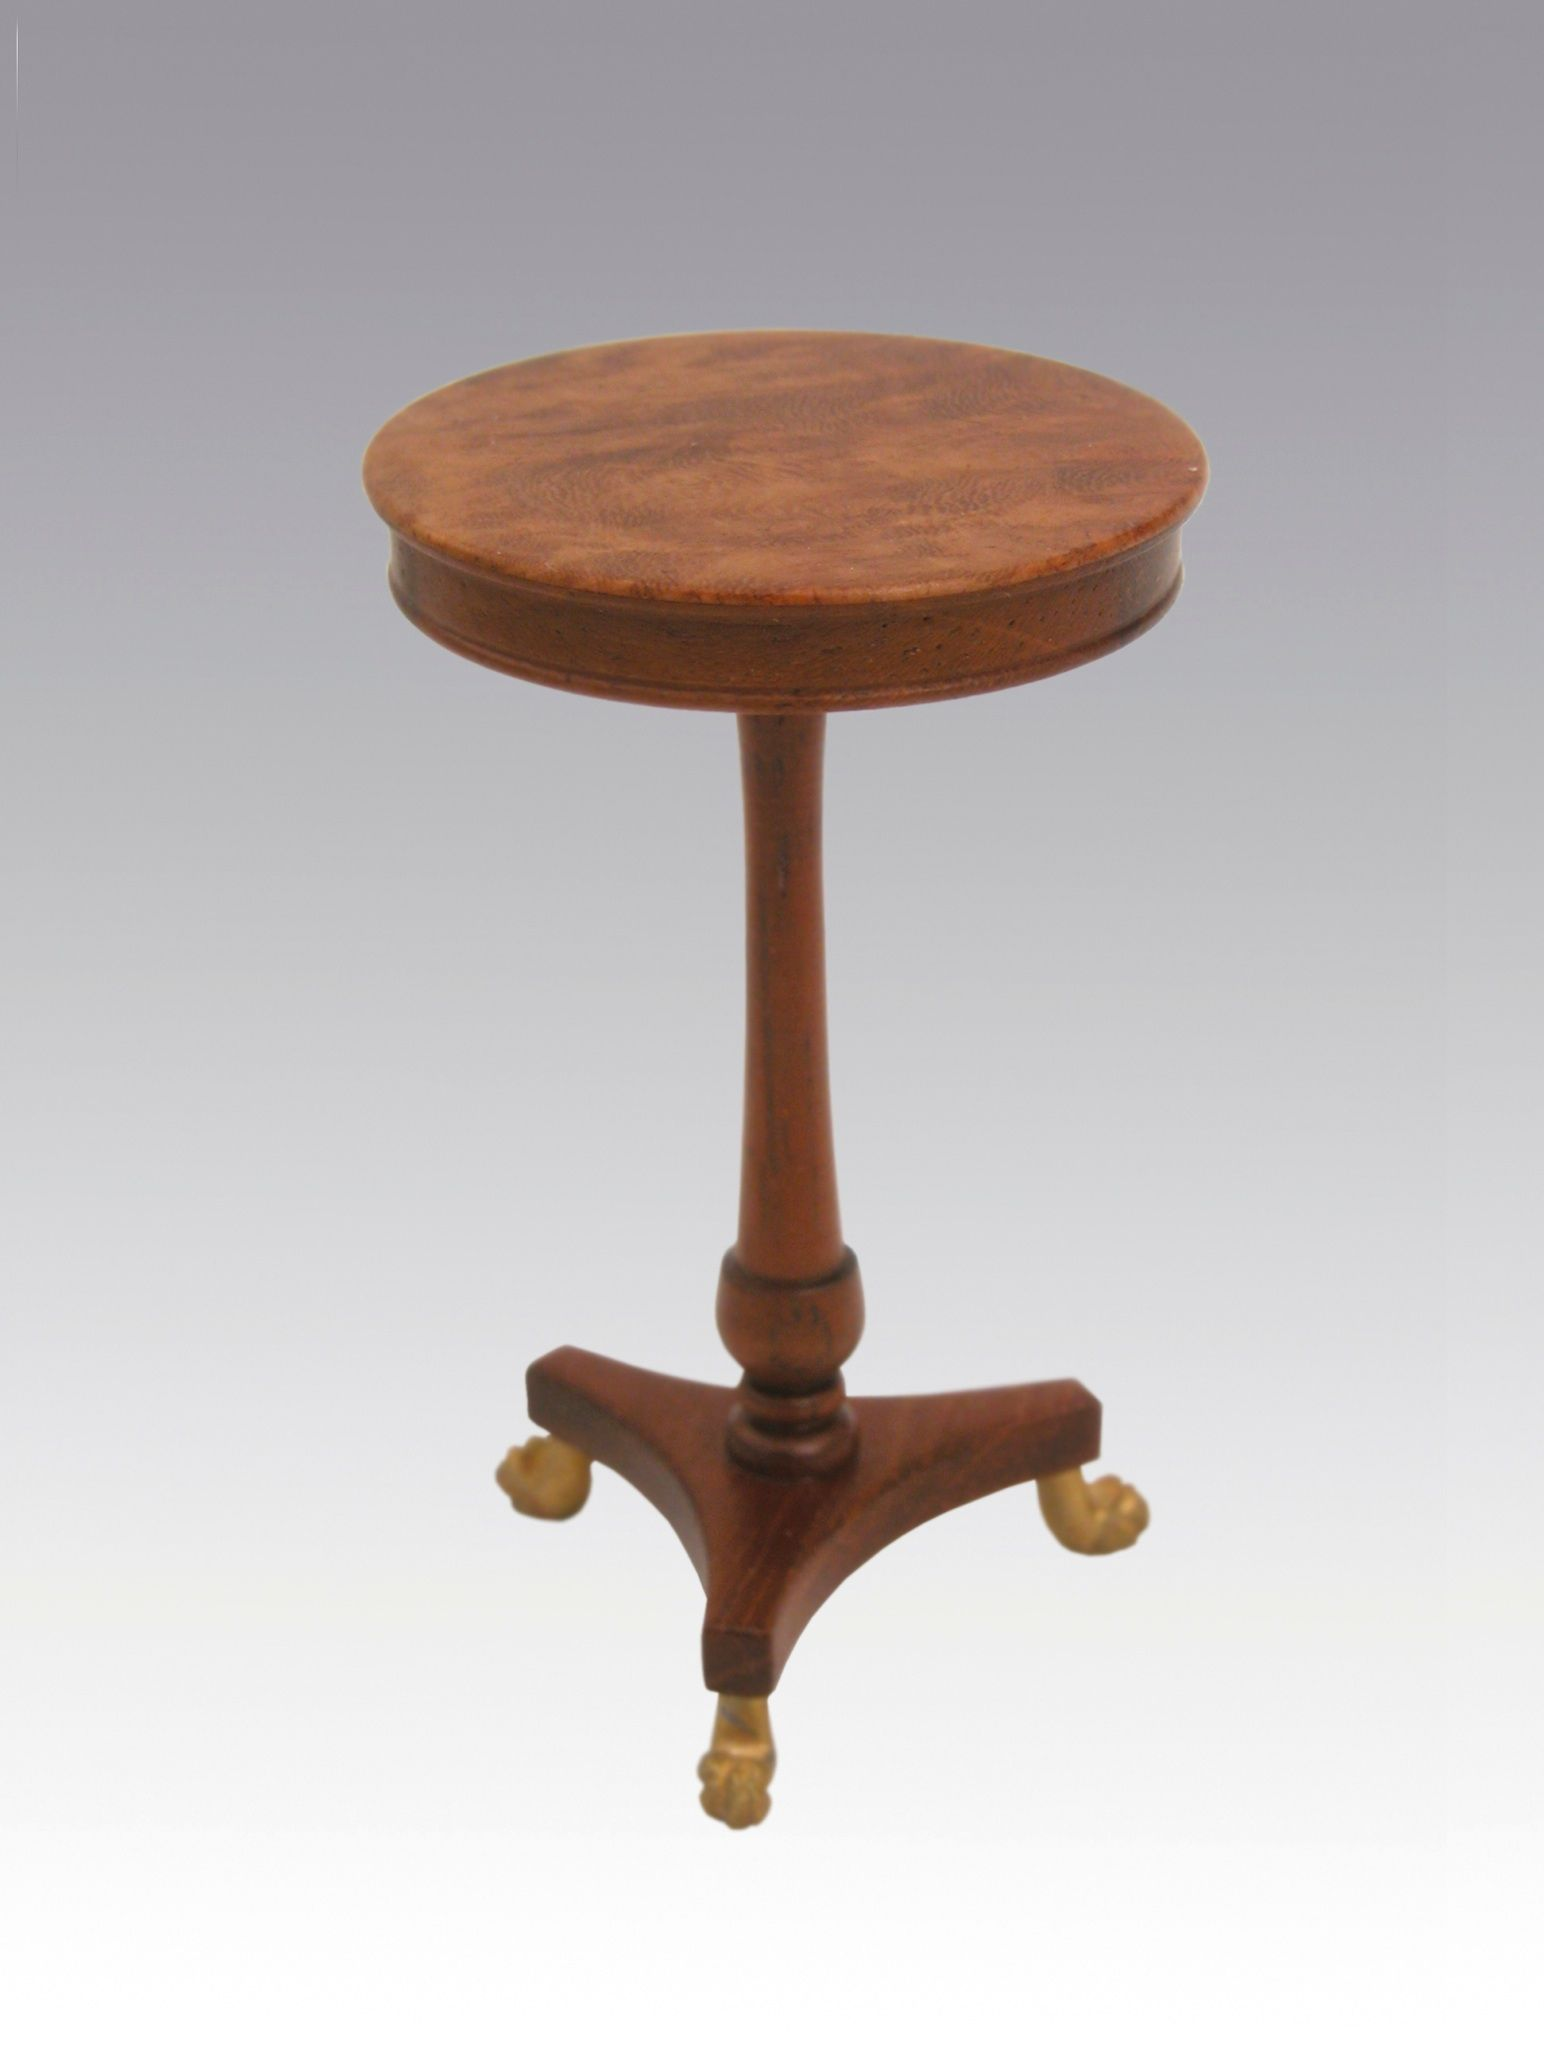 George III Clawfoot Mahogany Table by Geoff Wonnacott. http://www.geoffreywonnacott.co.uk